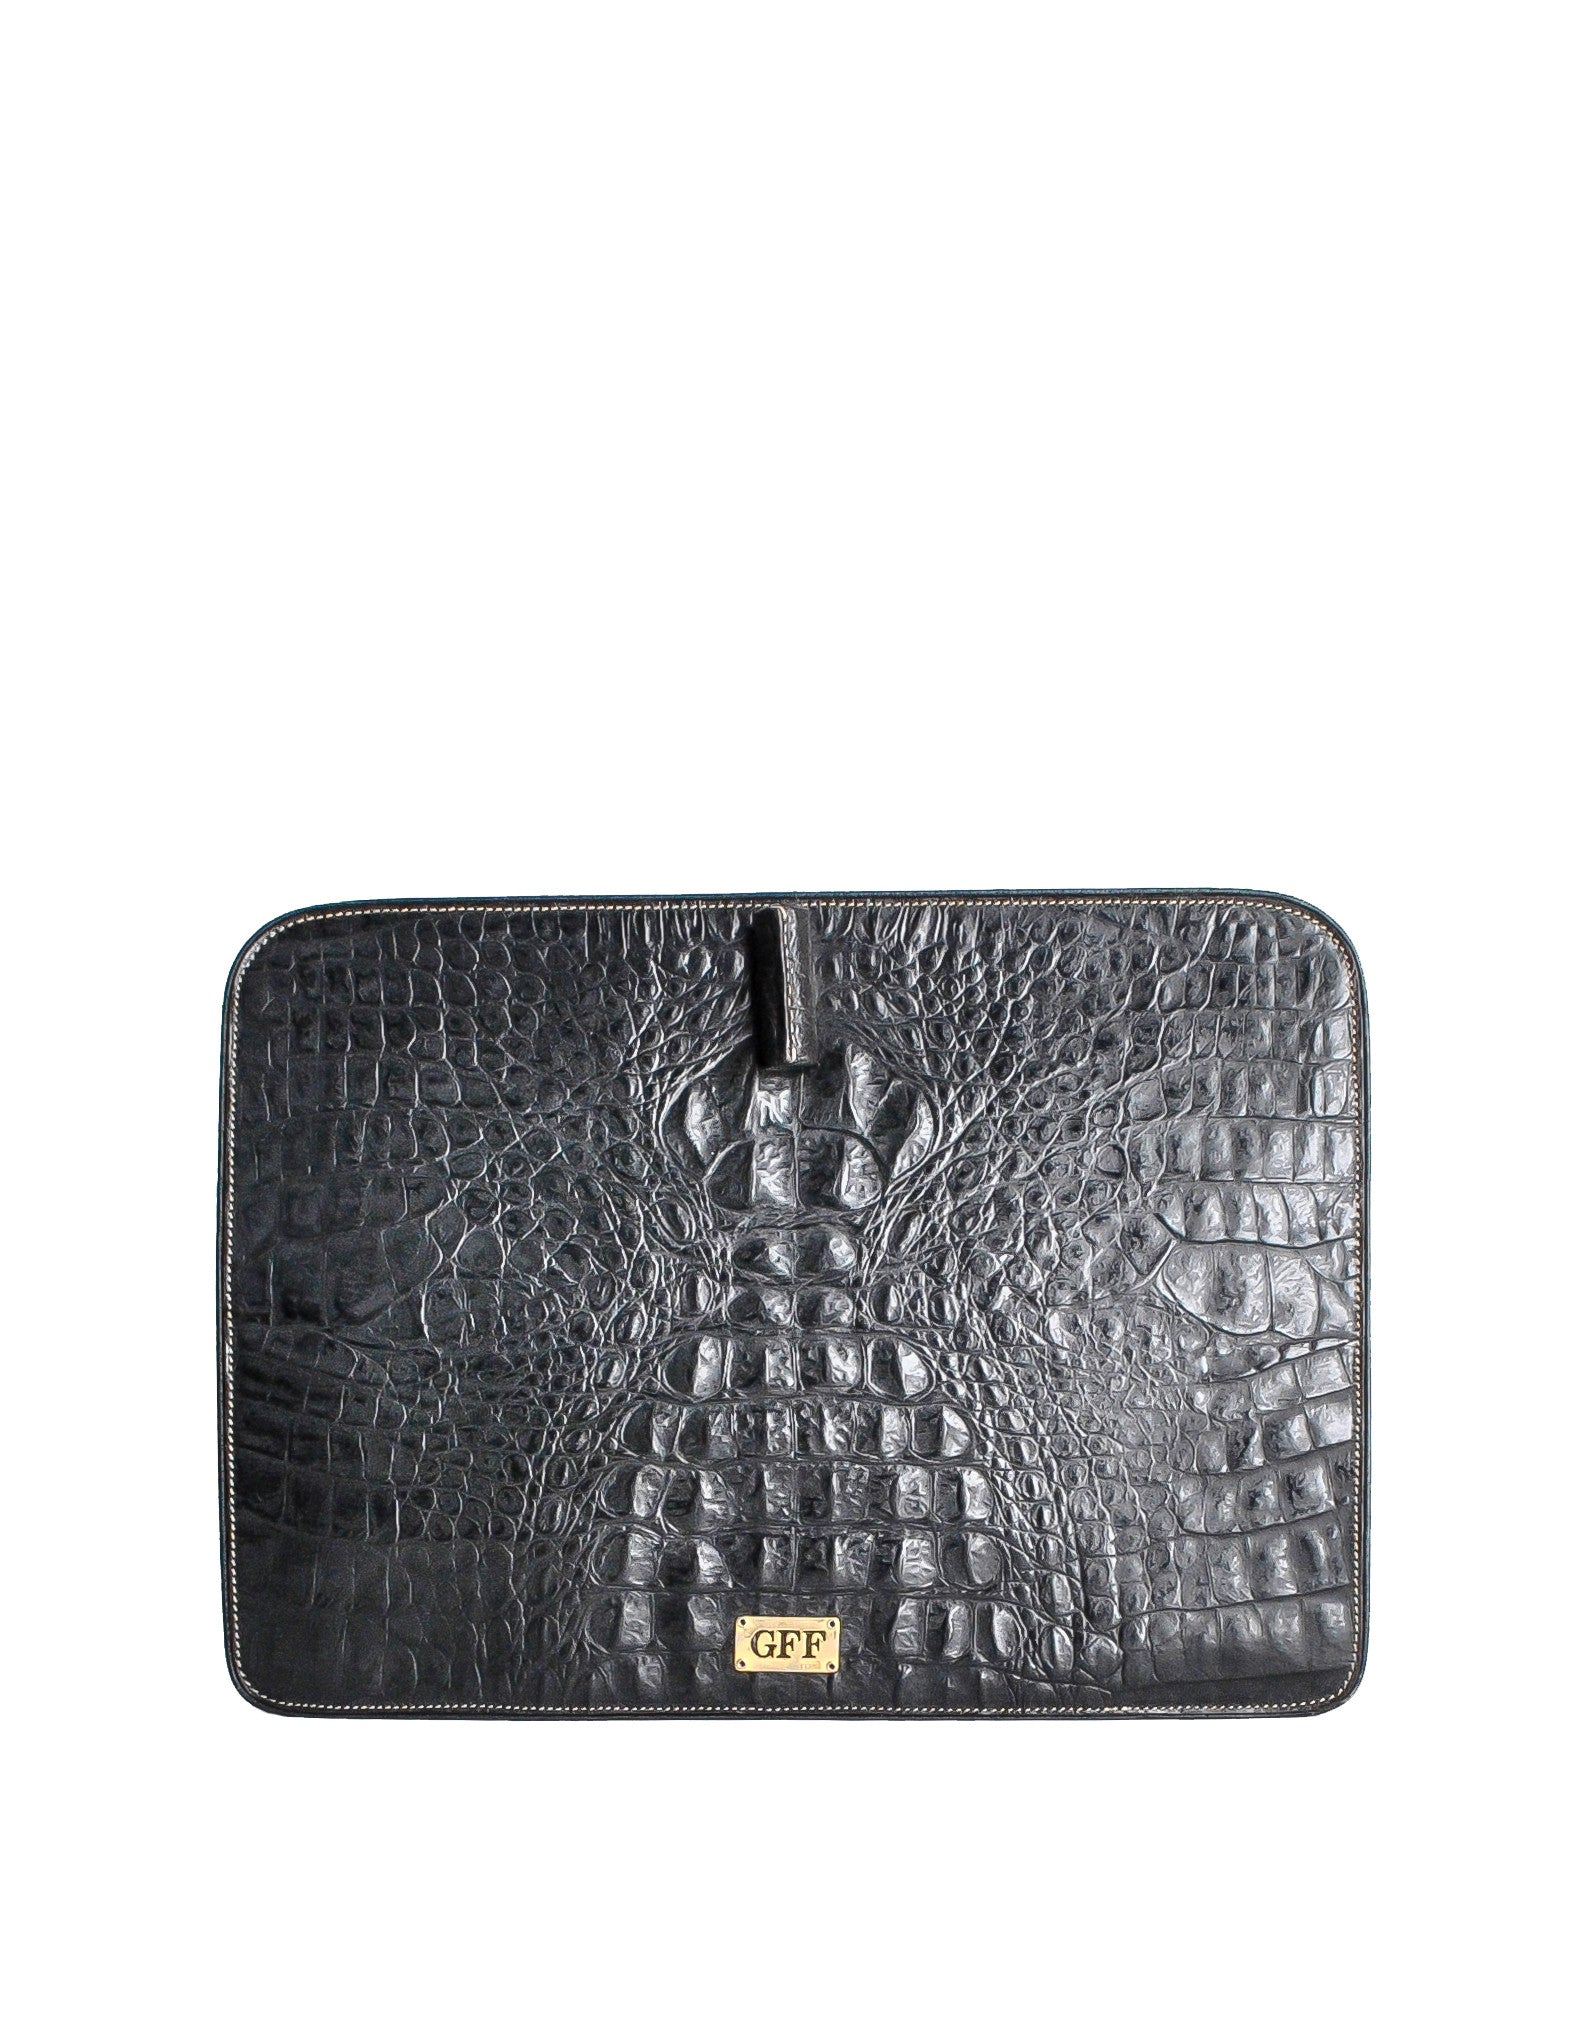 Ferré Vintage Black Alligator Portfolio Clutch - Amarcord Vintage Fashion  - 1